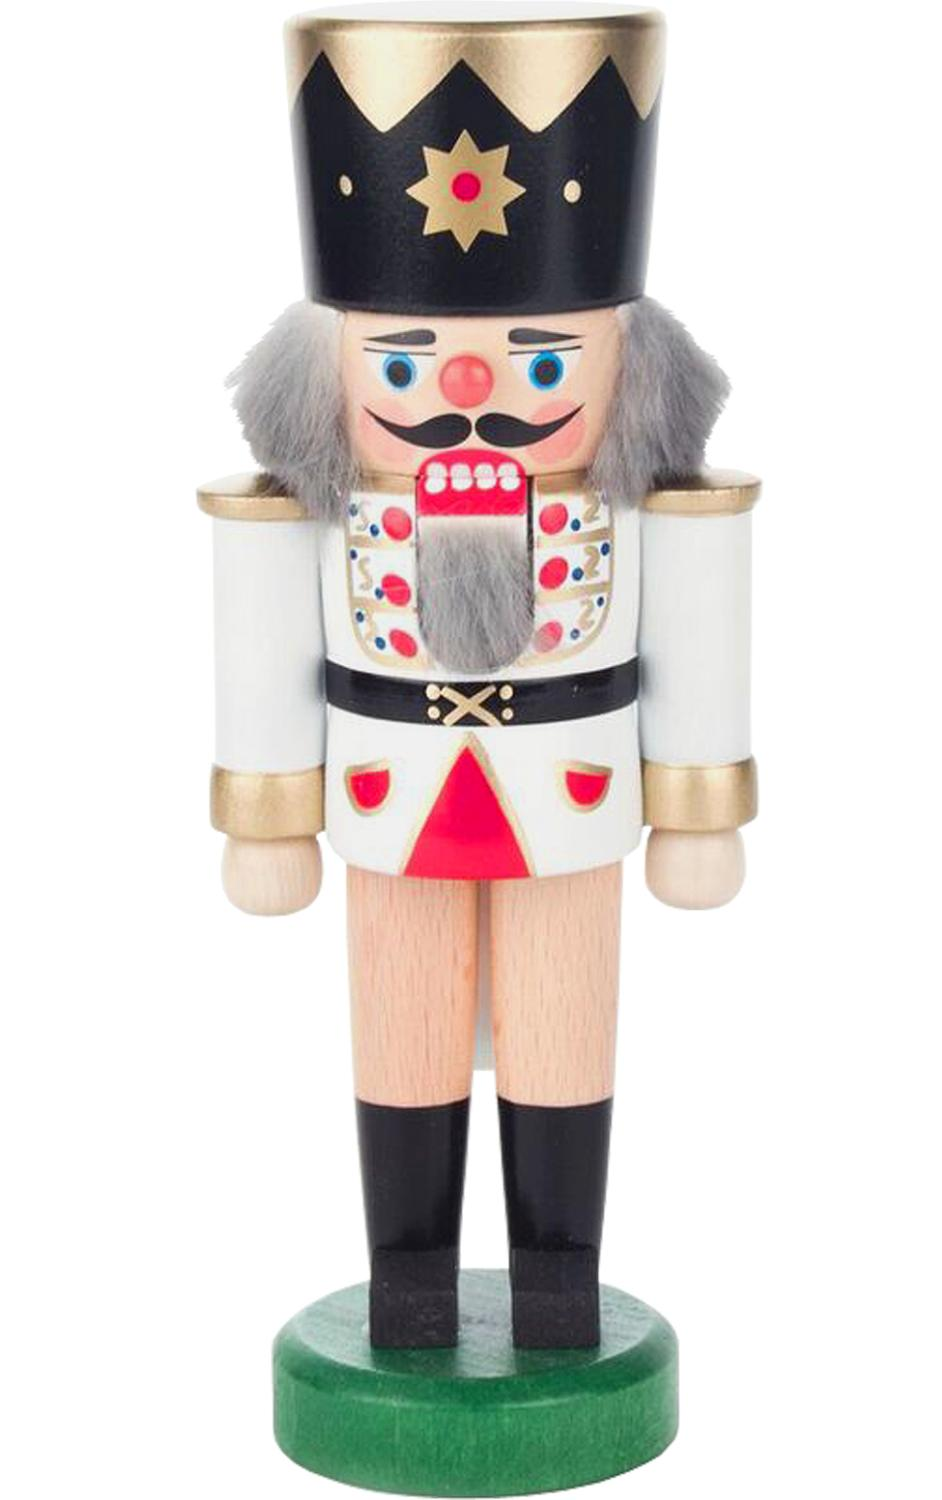 019-012W - Dregeno Nutcracker - White King - 7